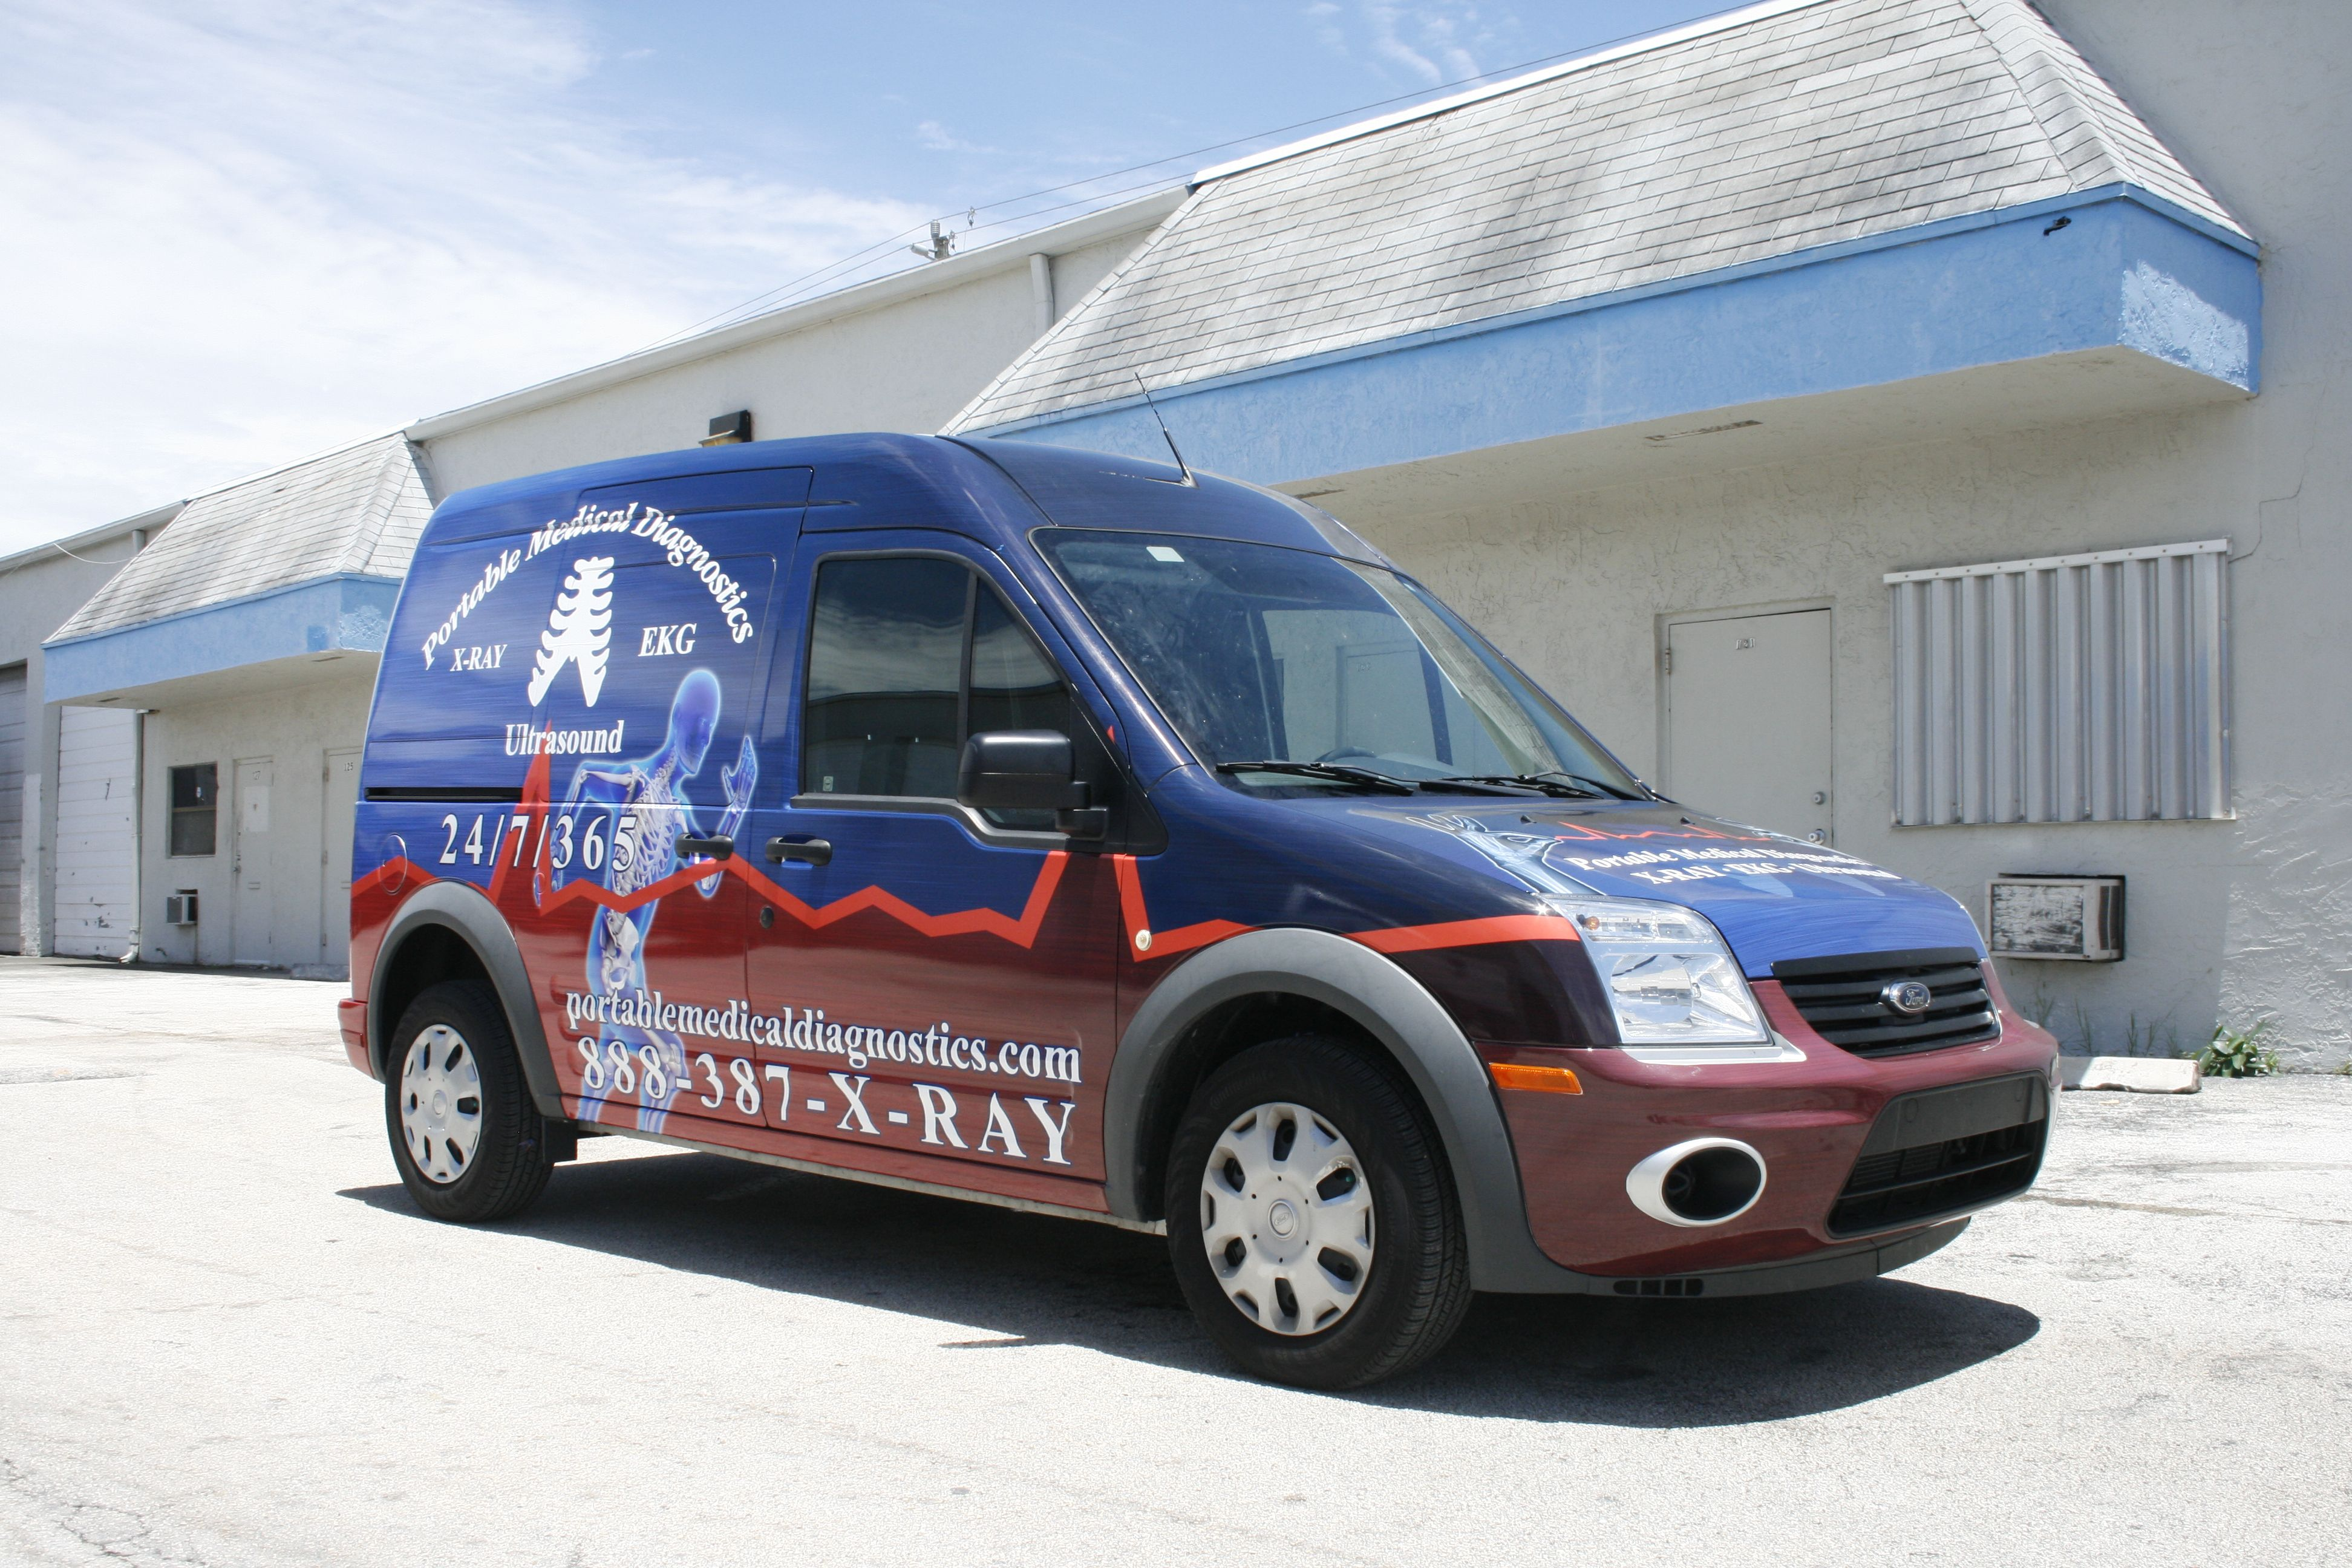 Ford transit connect van vehicle wrap advertising west palm beach florida http www